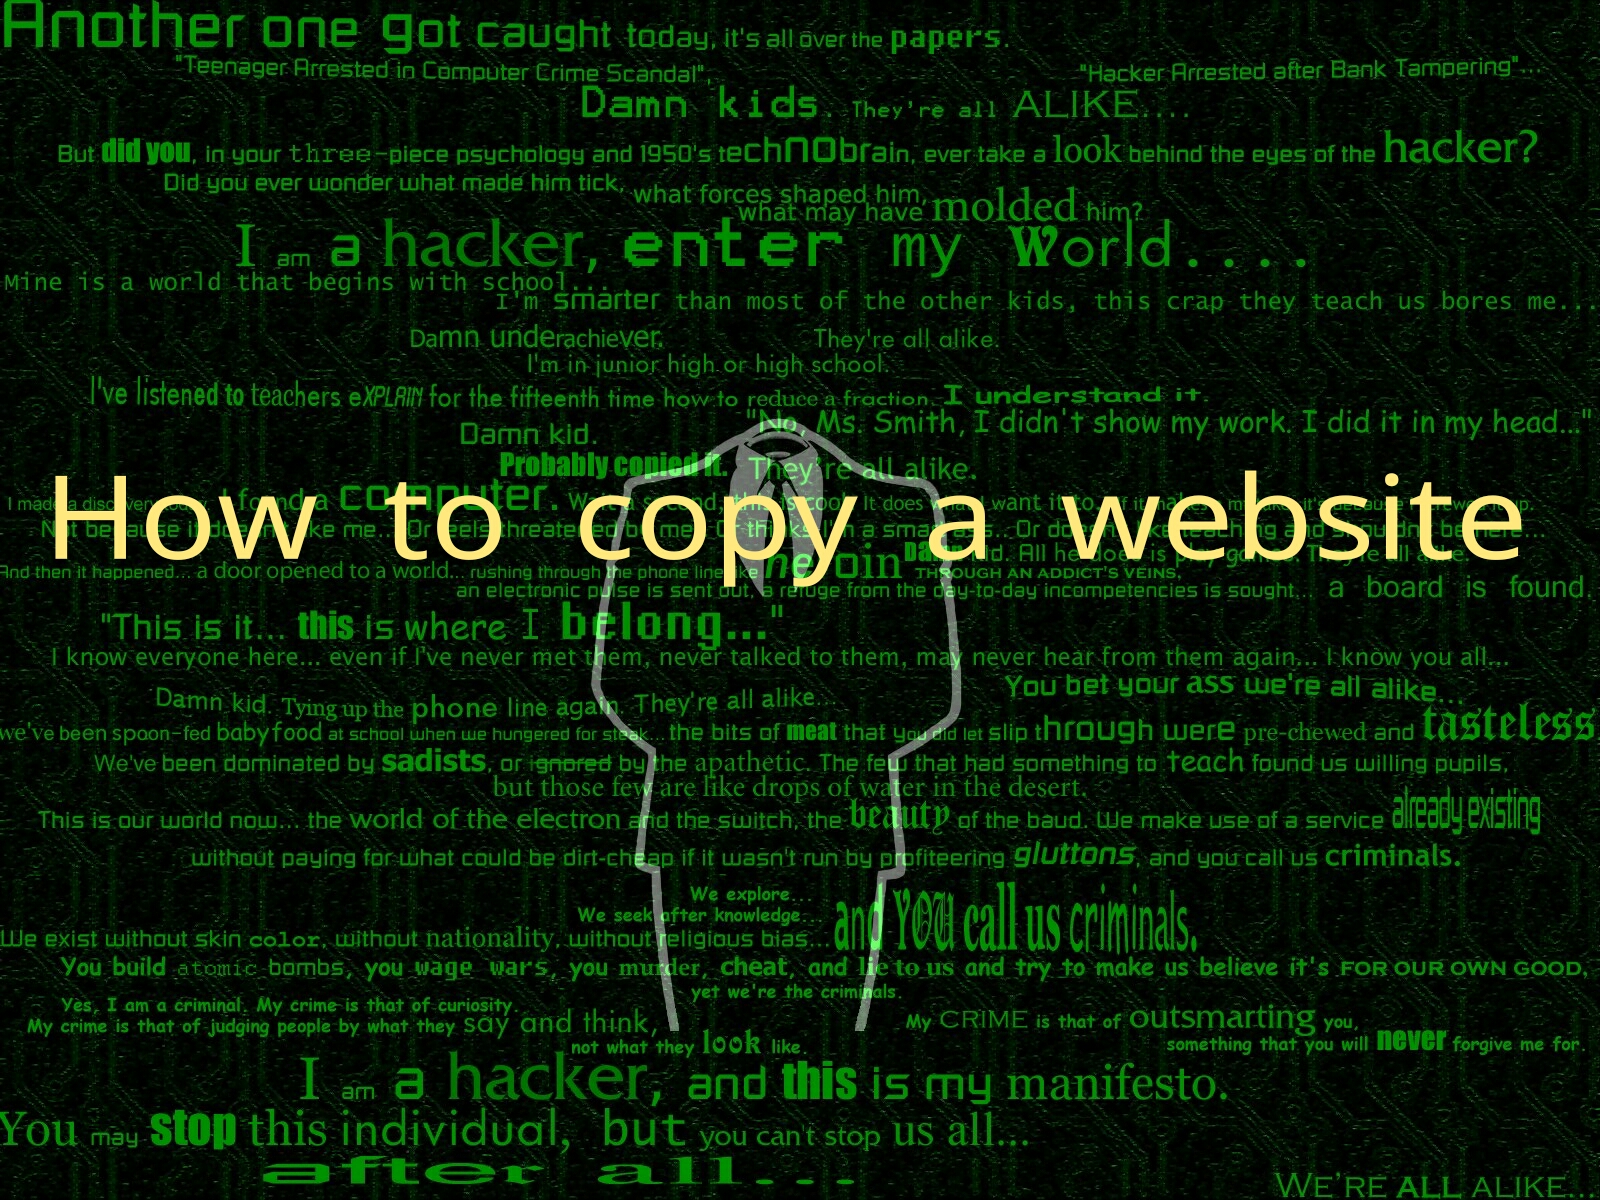 HOW TO COPY ANYONE'S WEBSITE